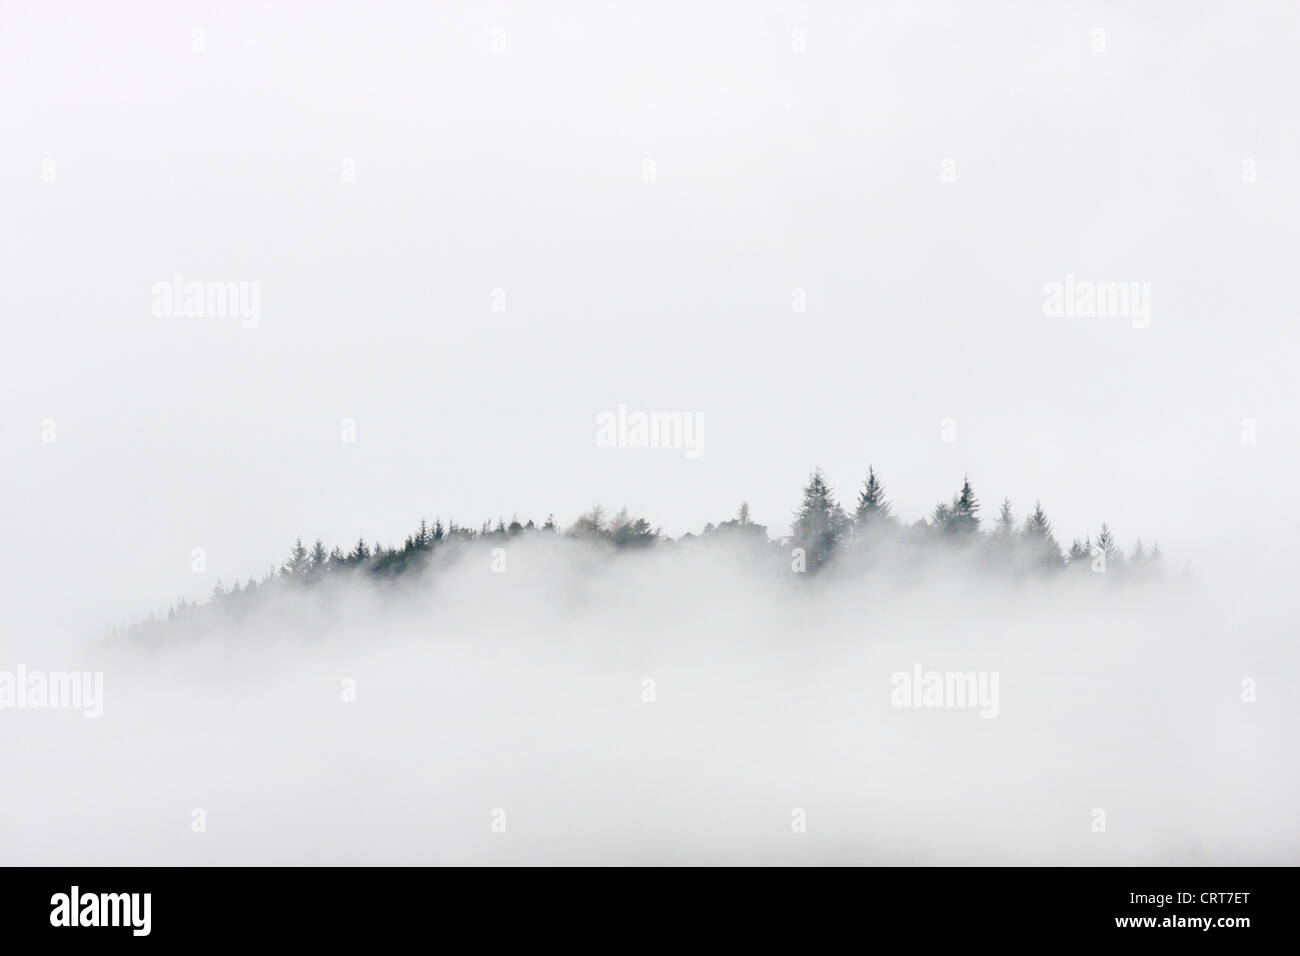 Pine trees amongst the clouds, Strathconon, Highlands, Scotland, UK - Stock Image